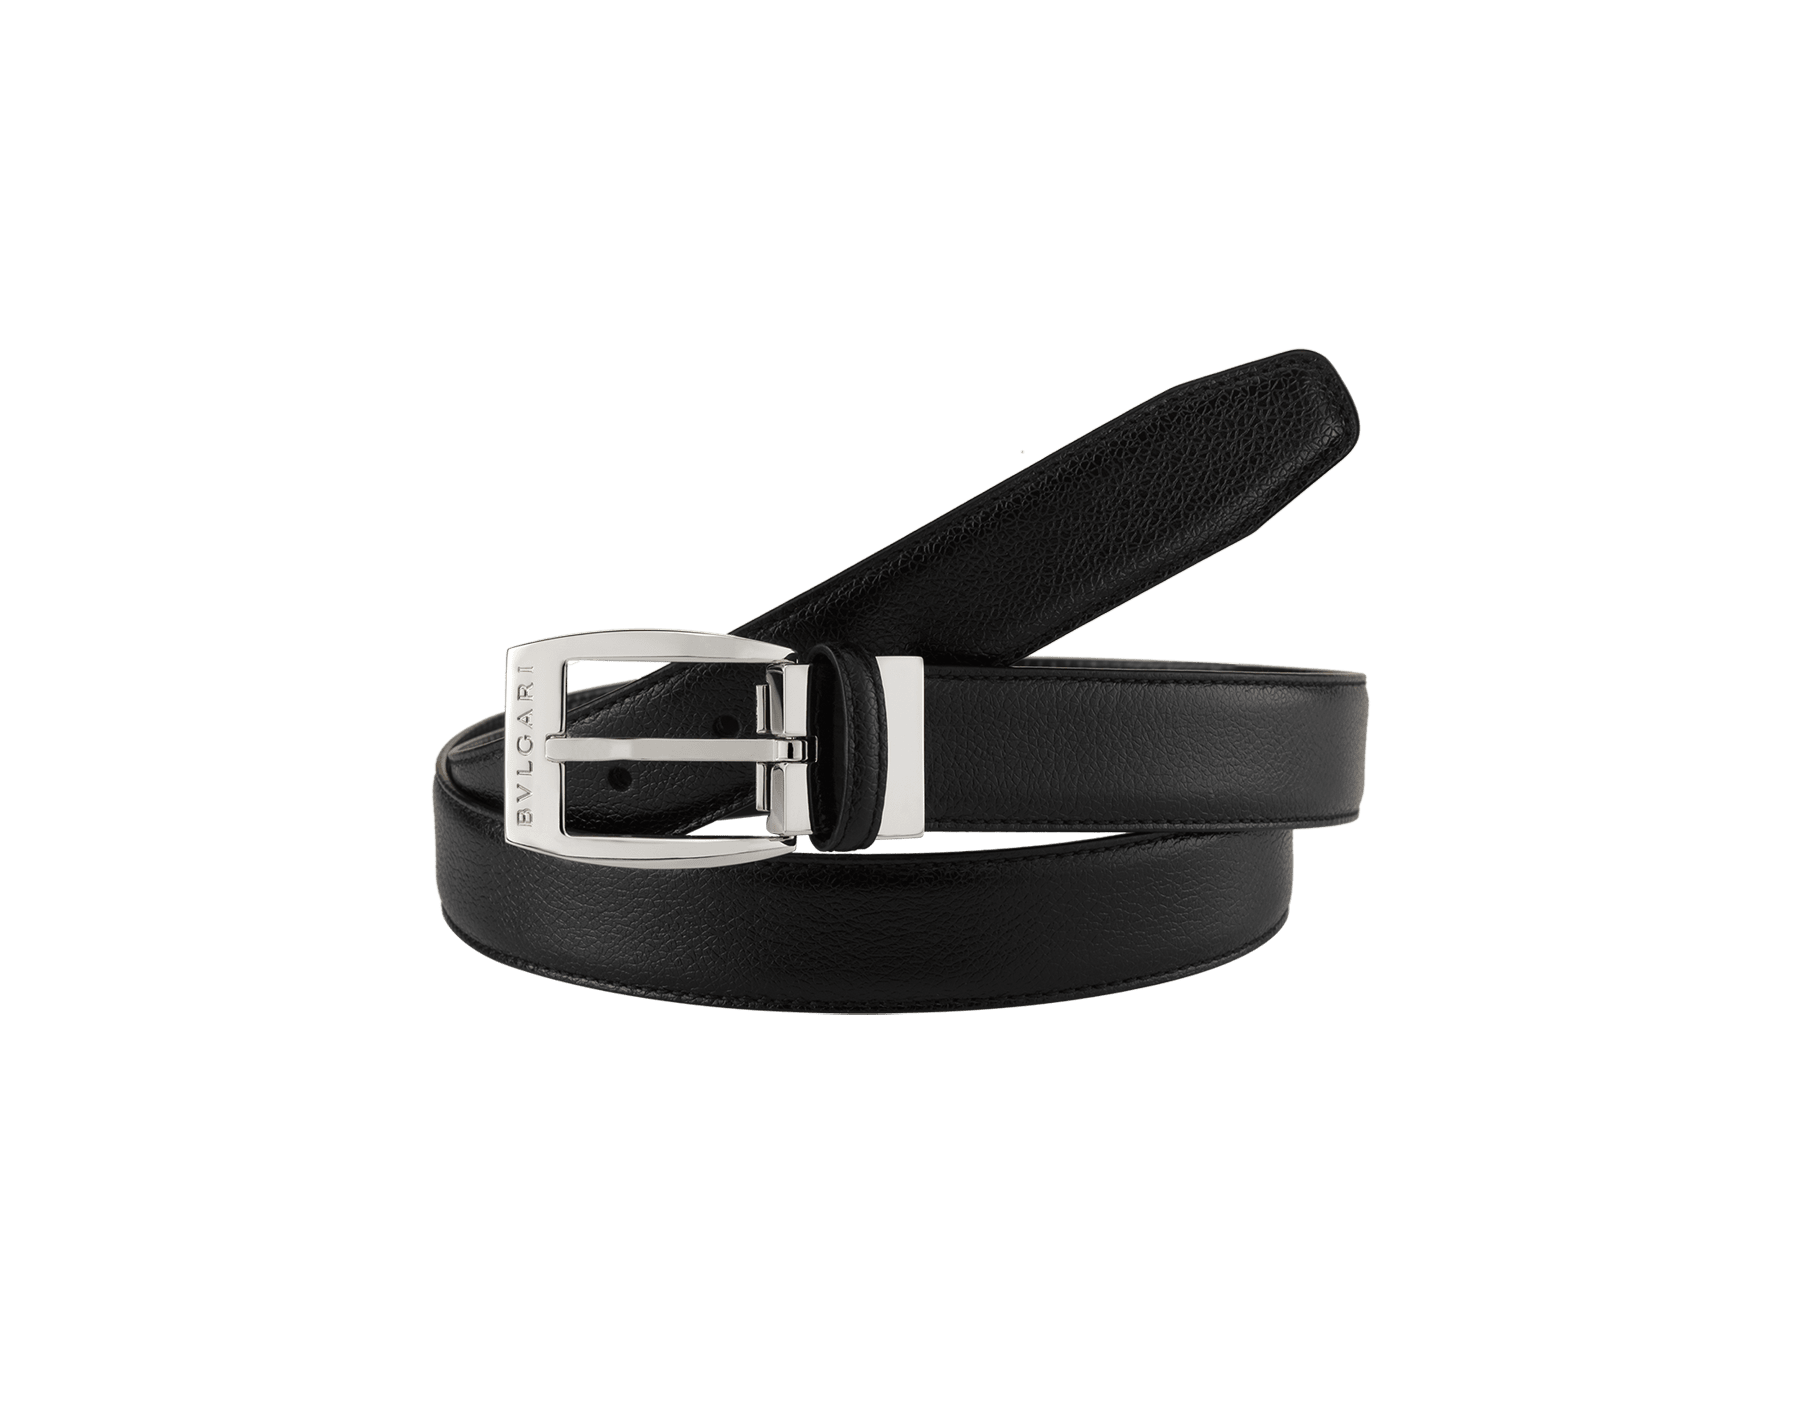 Black country calf leather belt for men with Ellipse closure in brass palladium plated hardware. Also available in other colors and materials. 43.3x1.2 (110x3 cm) ELLIPSE-CCL image 3